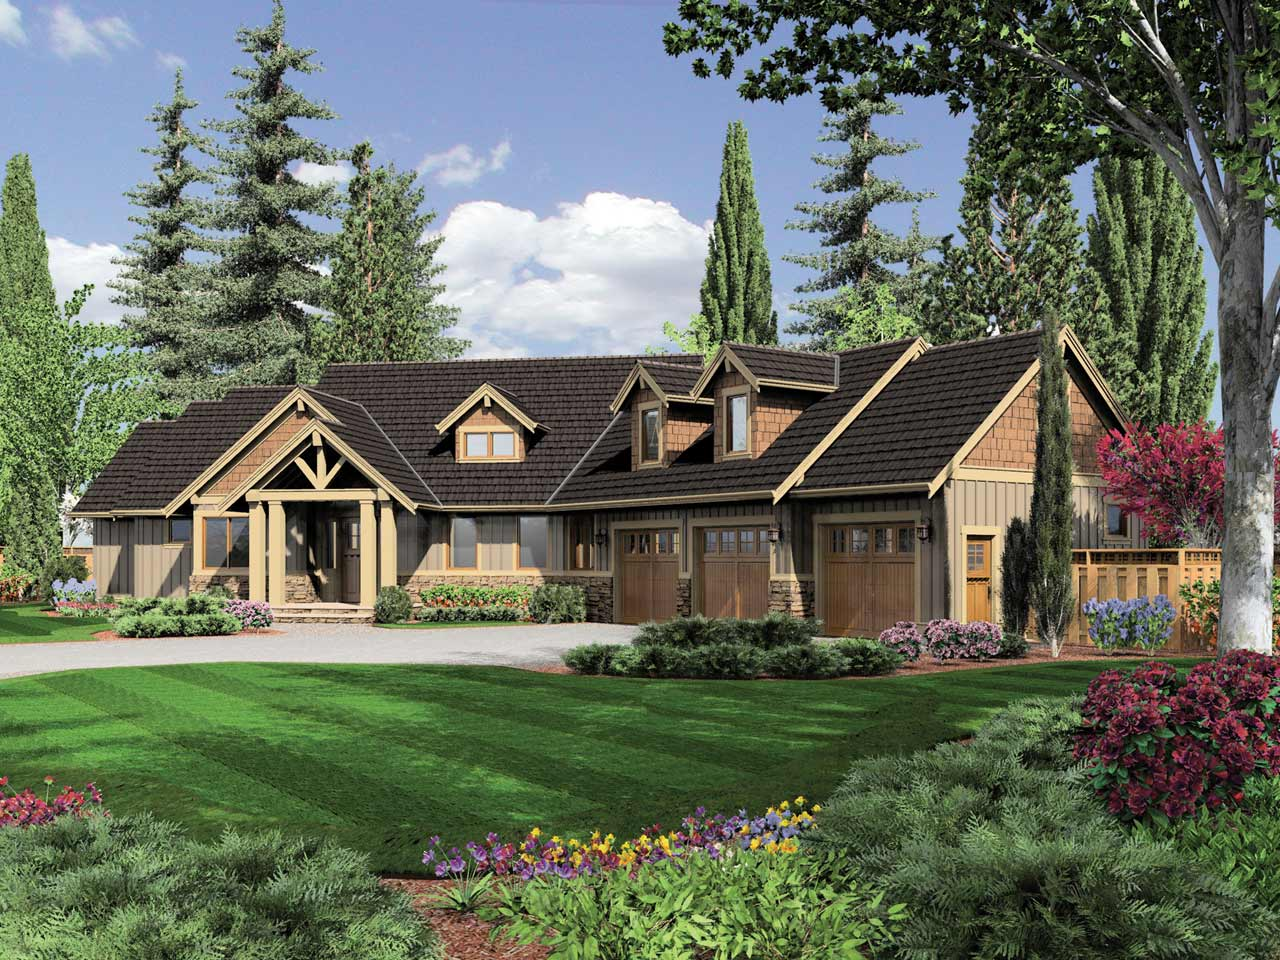 Craftsman Style House Plans 74-643